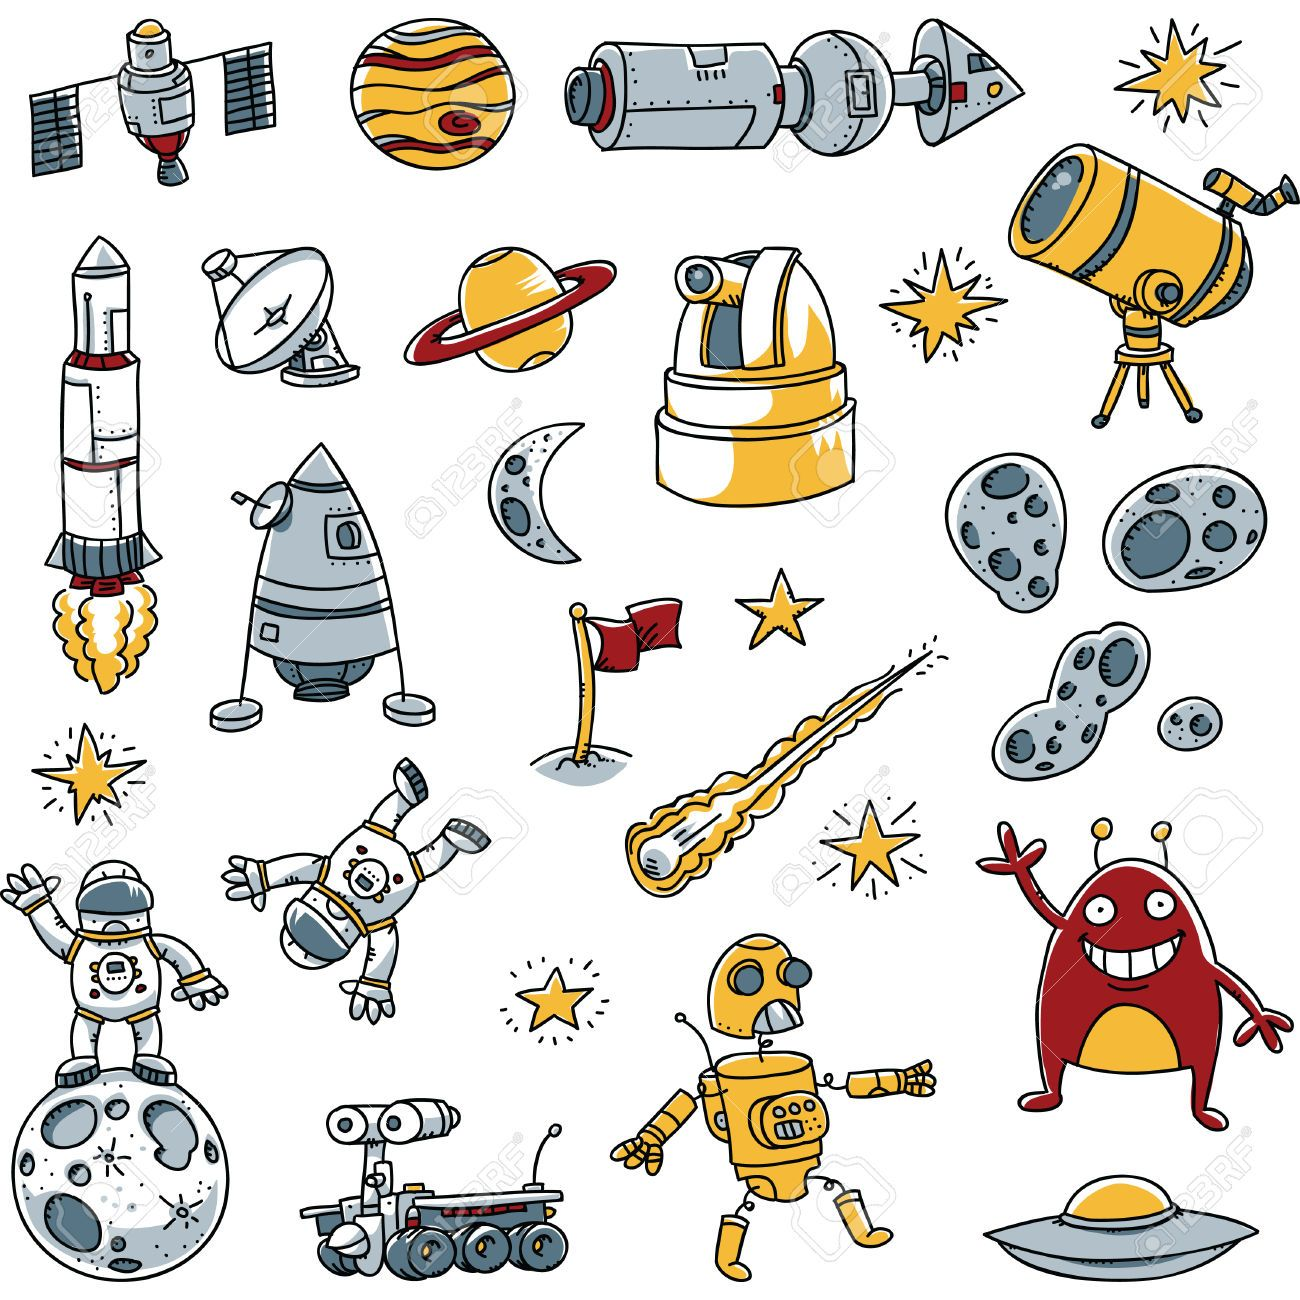 Space drawing clipart clip art black and white library Stock Vector | c o n t e n t t a l k in 2019 | Space ... clip art black and white library